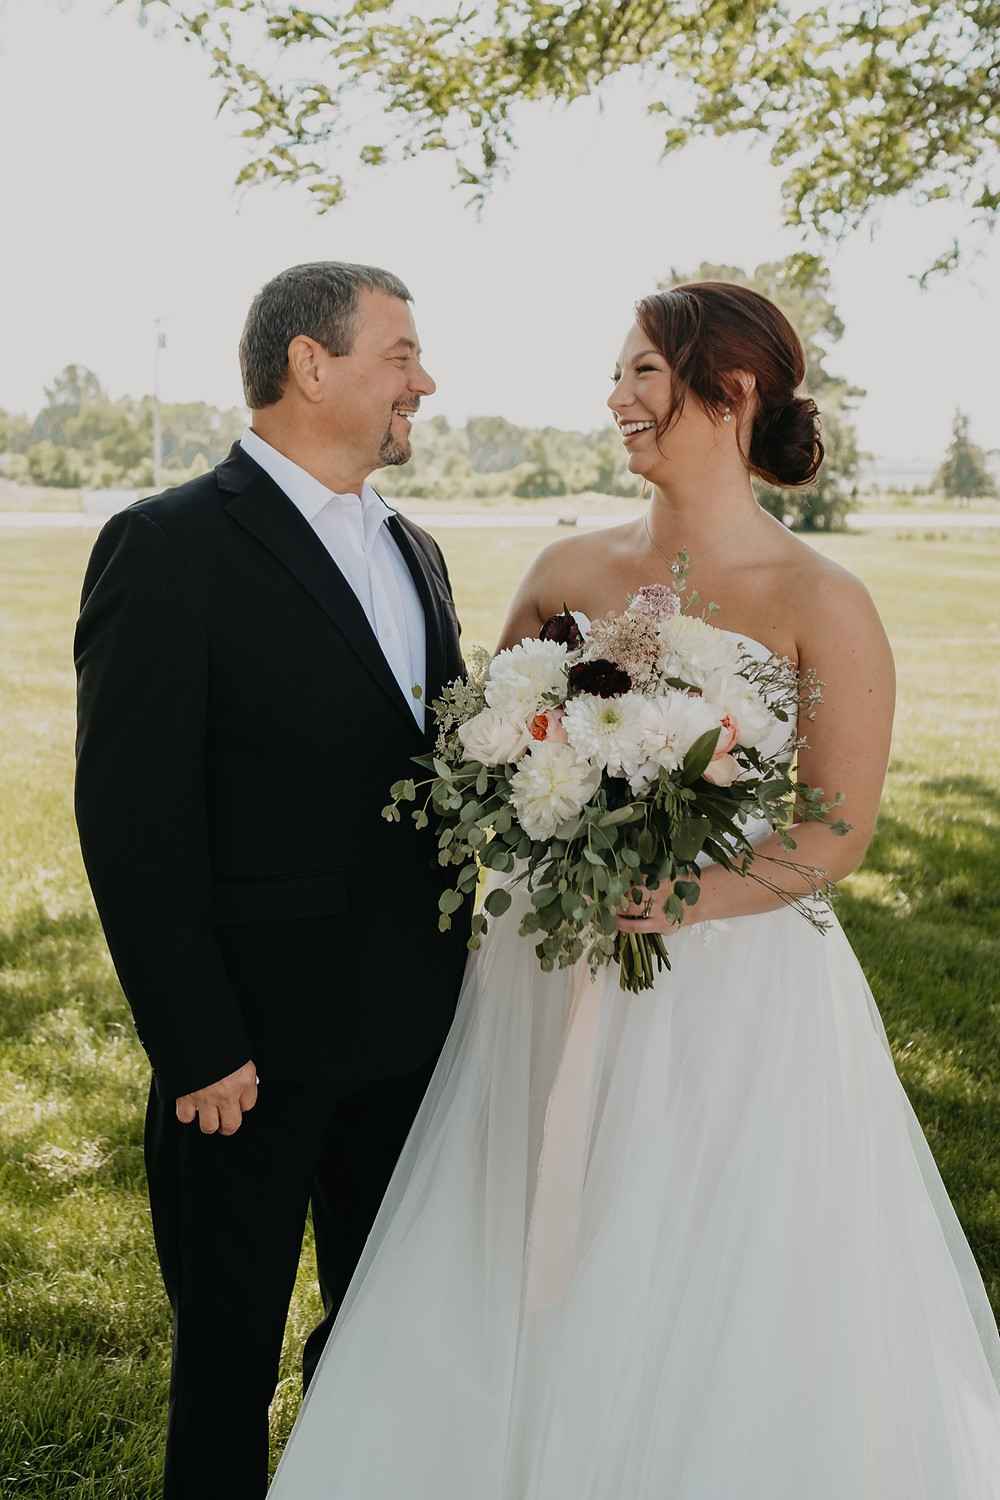 Bride and her father on wedding day. Photographed by Nicole Leanne Photography.